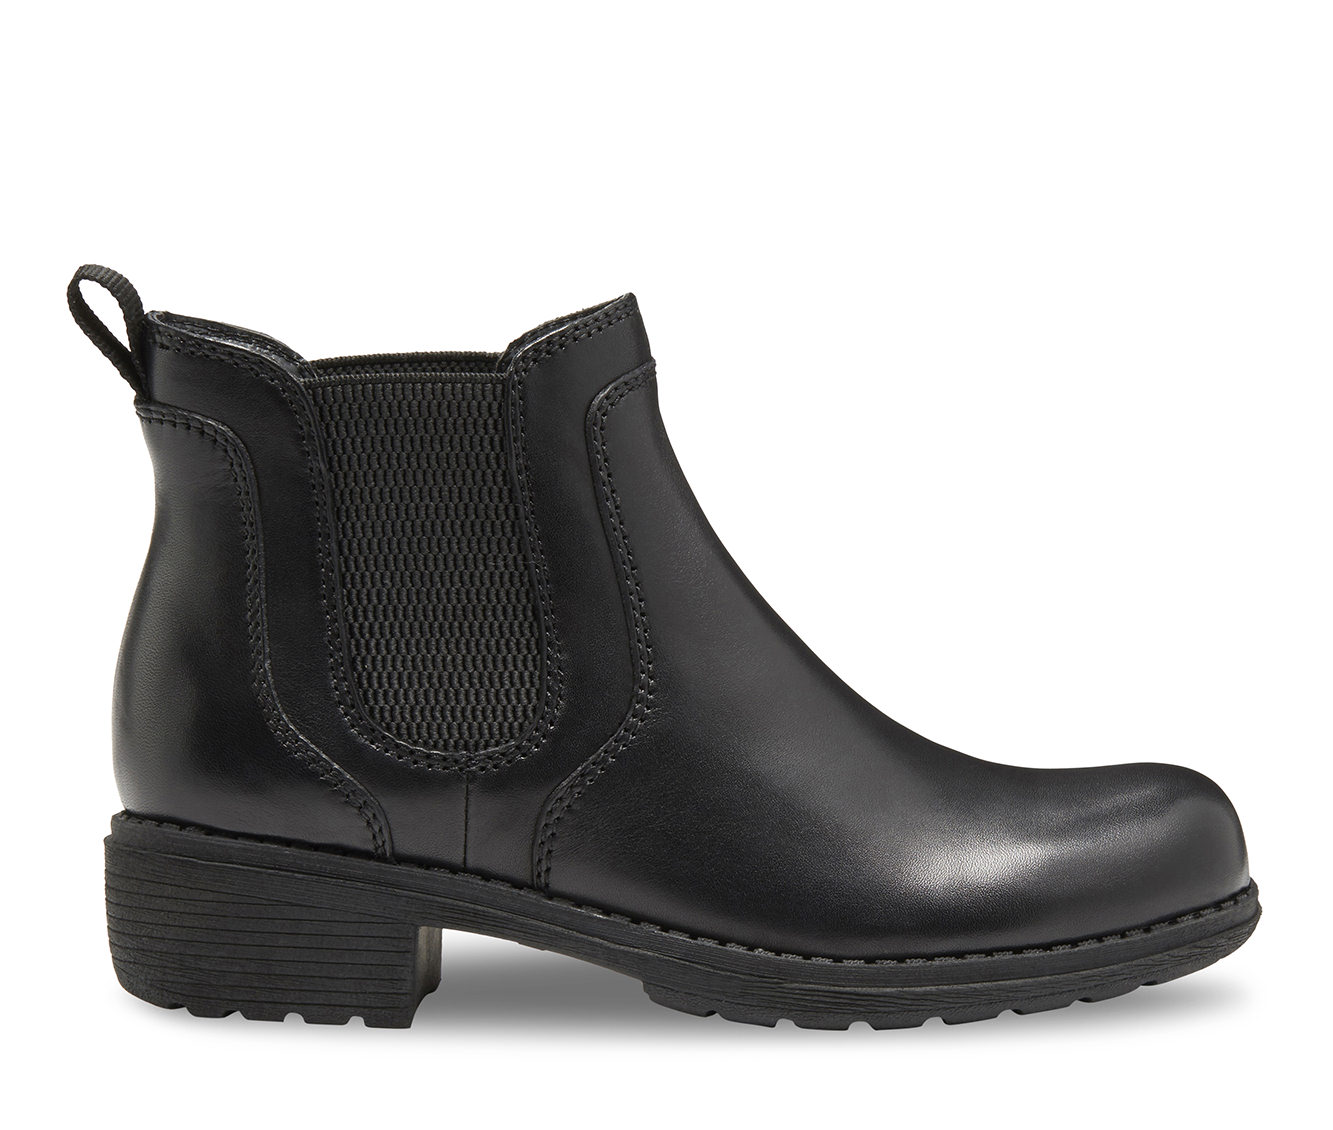 Eastland Double Up Women's Boots (Black - Leather)